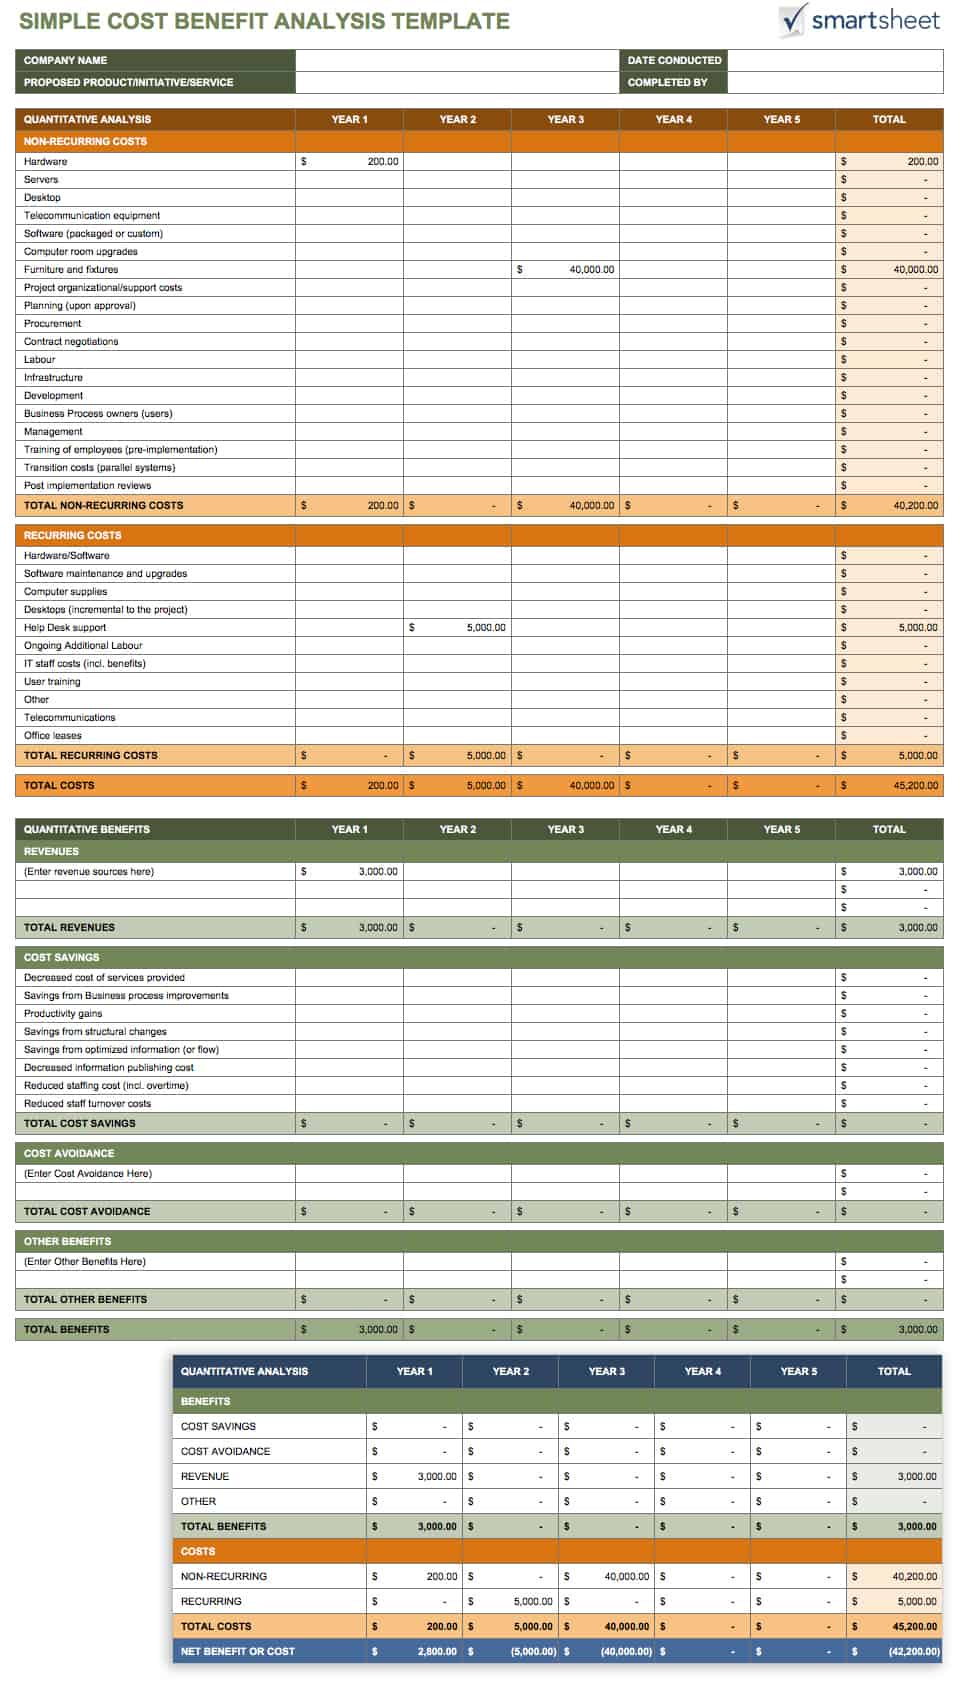 IC SimpleCostBenefitAnalysis. This Cost Benefit Analysis Template ...  Cost Savings Analysis Template